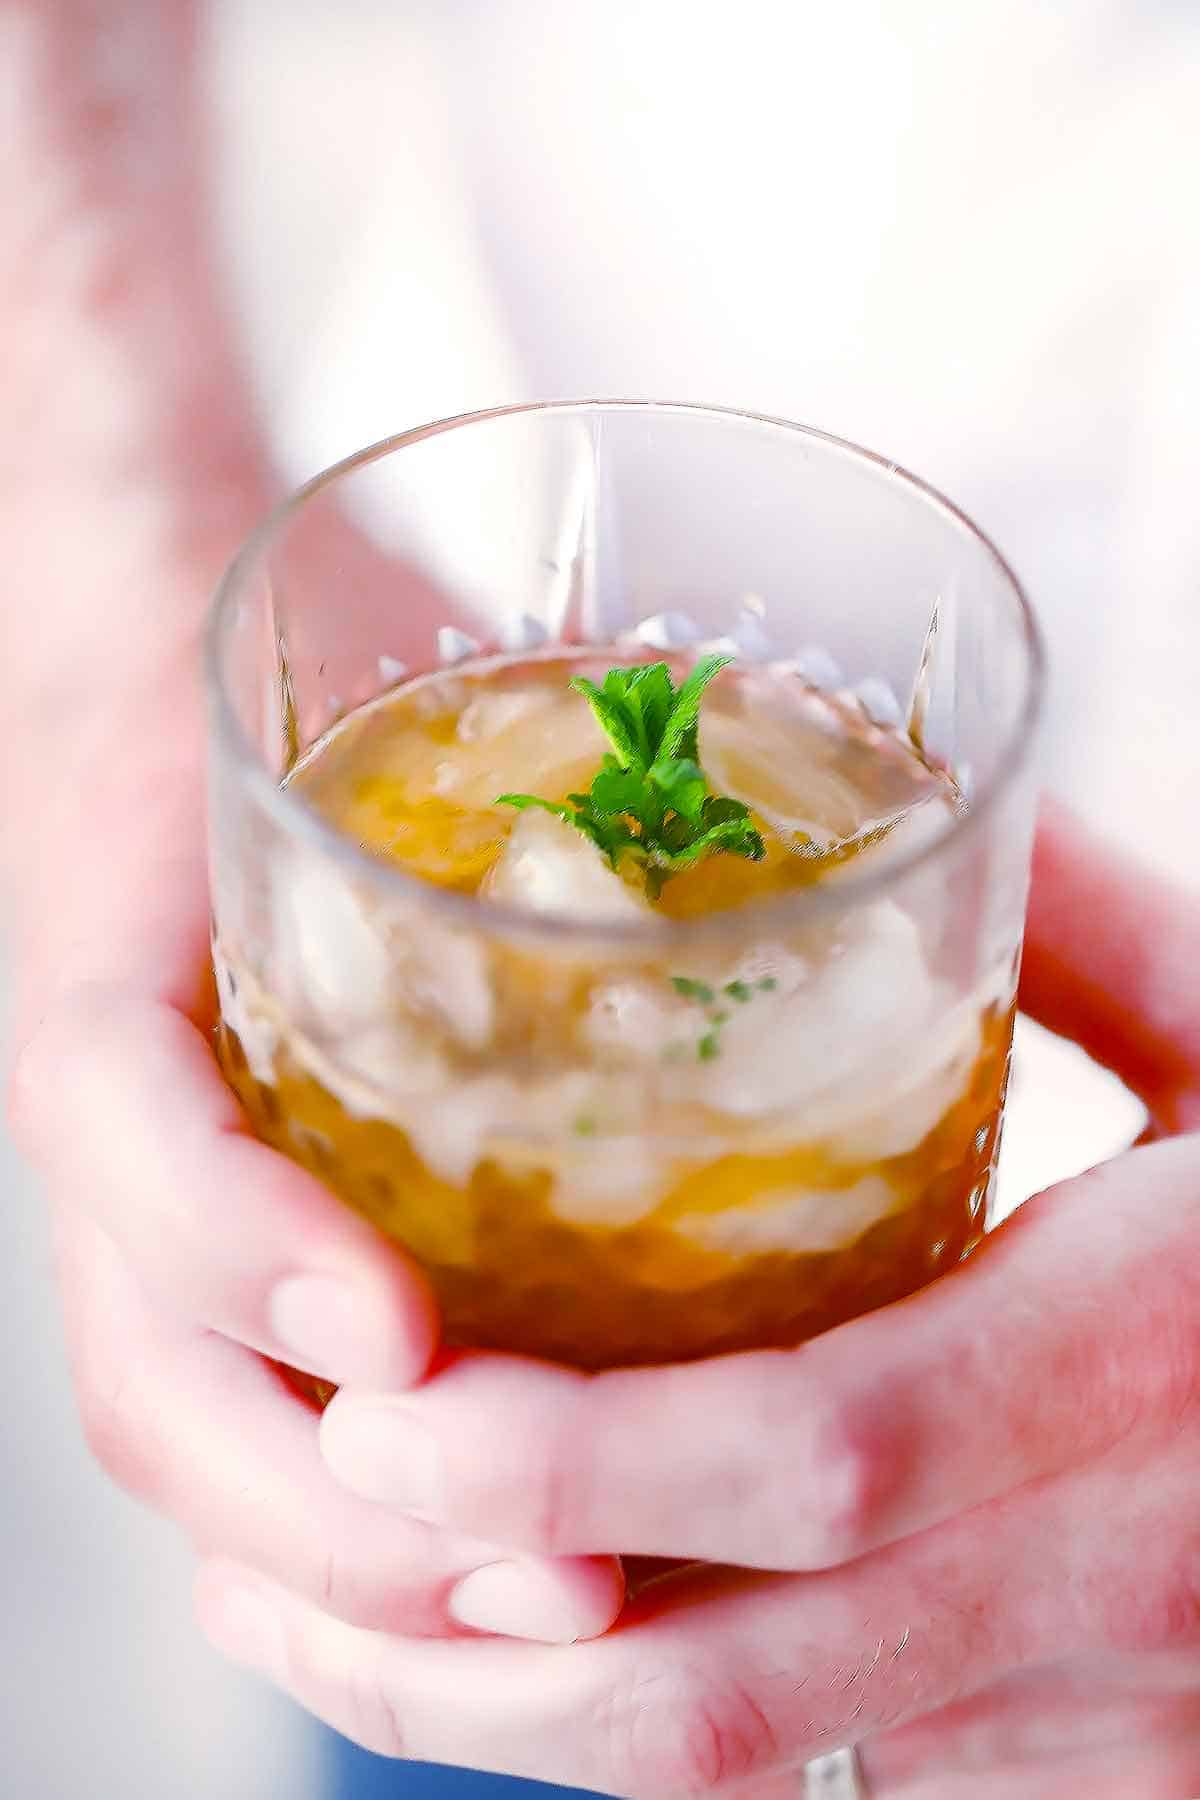 Hands holding a mint julep in an old fashioned glass.